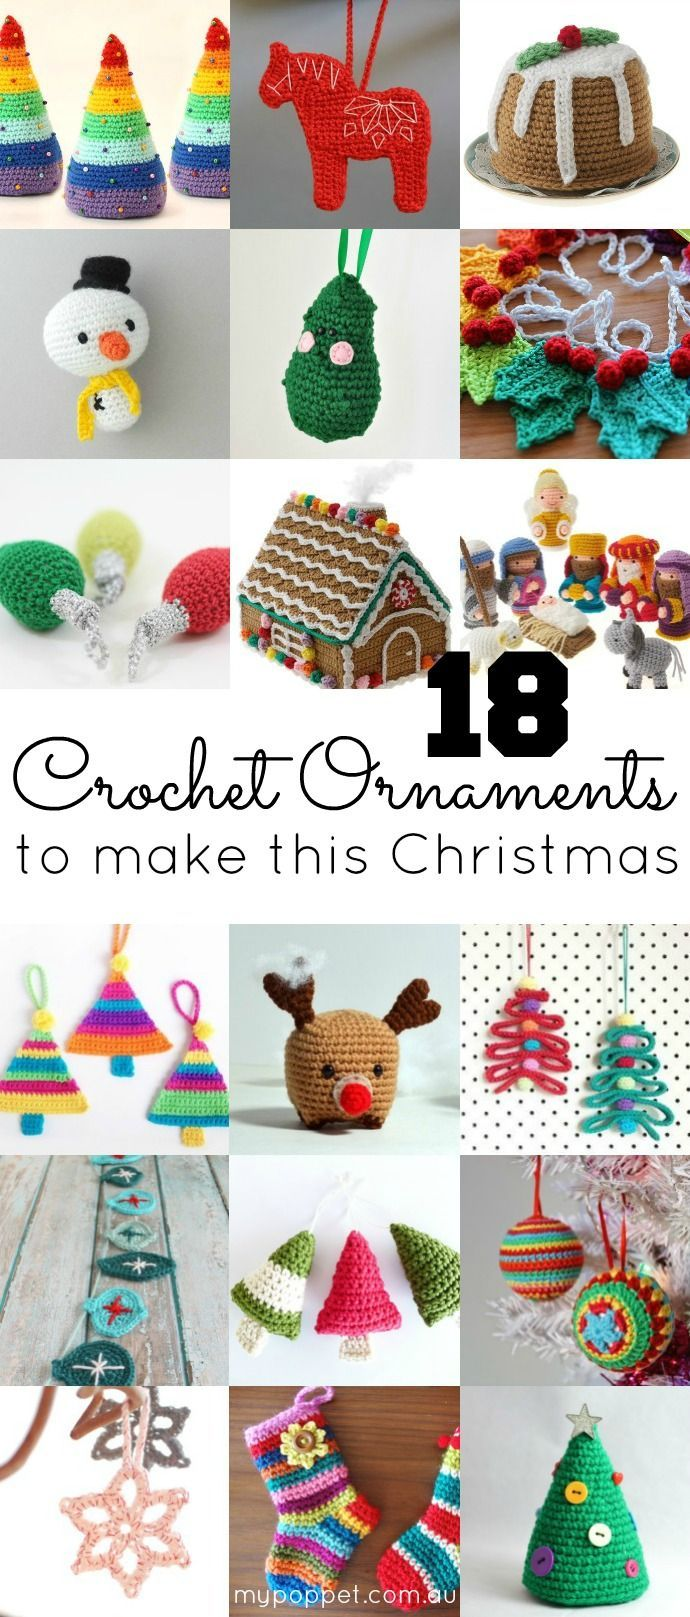 Free and paid for patterns: 18 Crochet Ornaments to make this Christmas